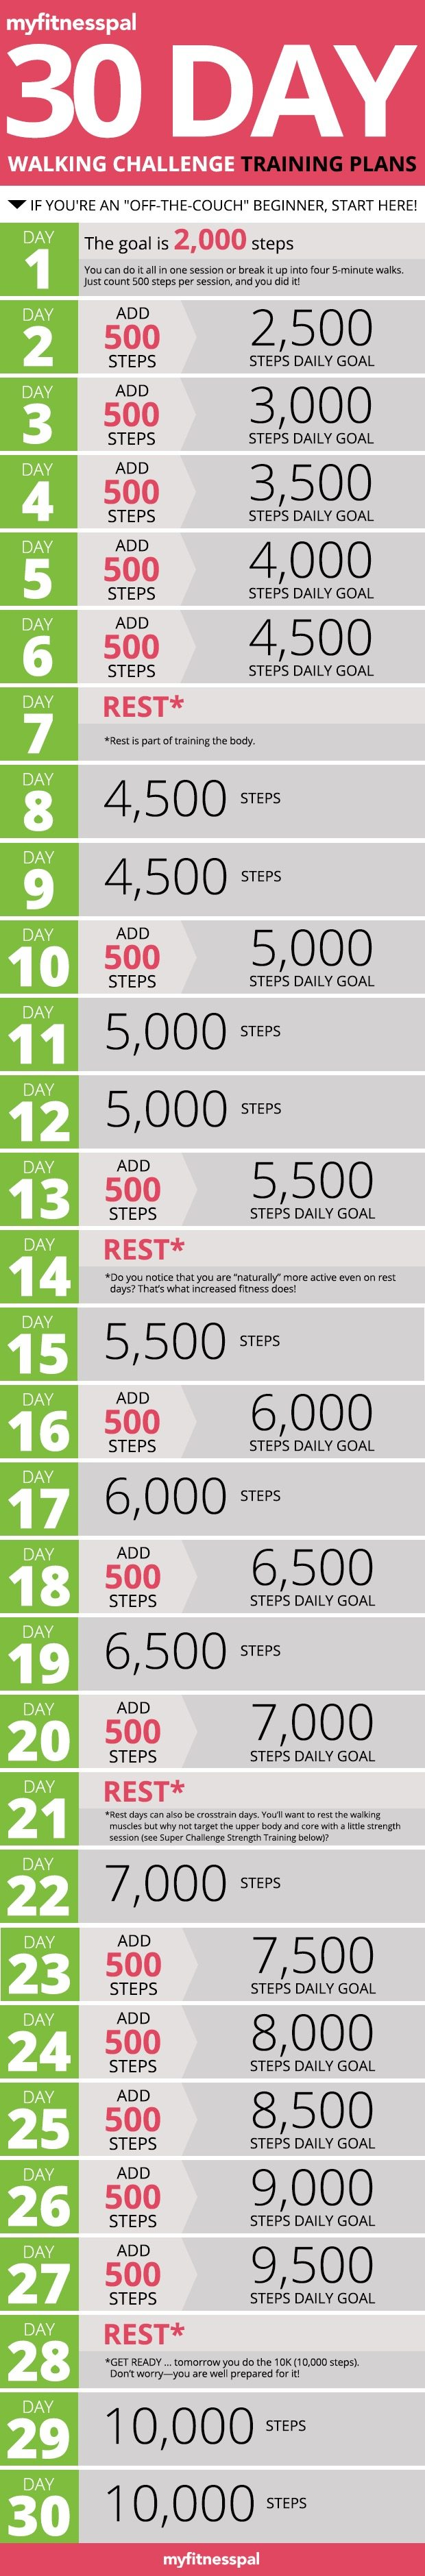 30 Days Walking Challenge